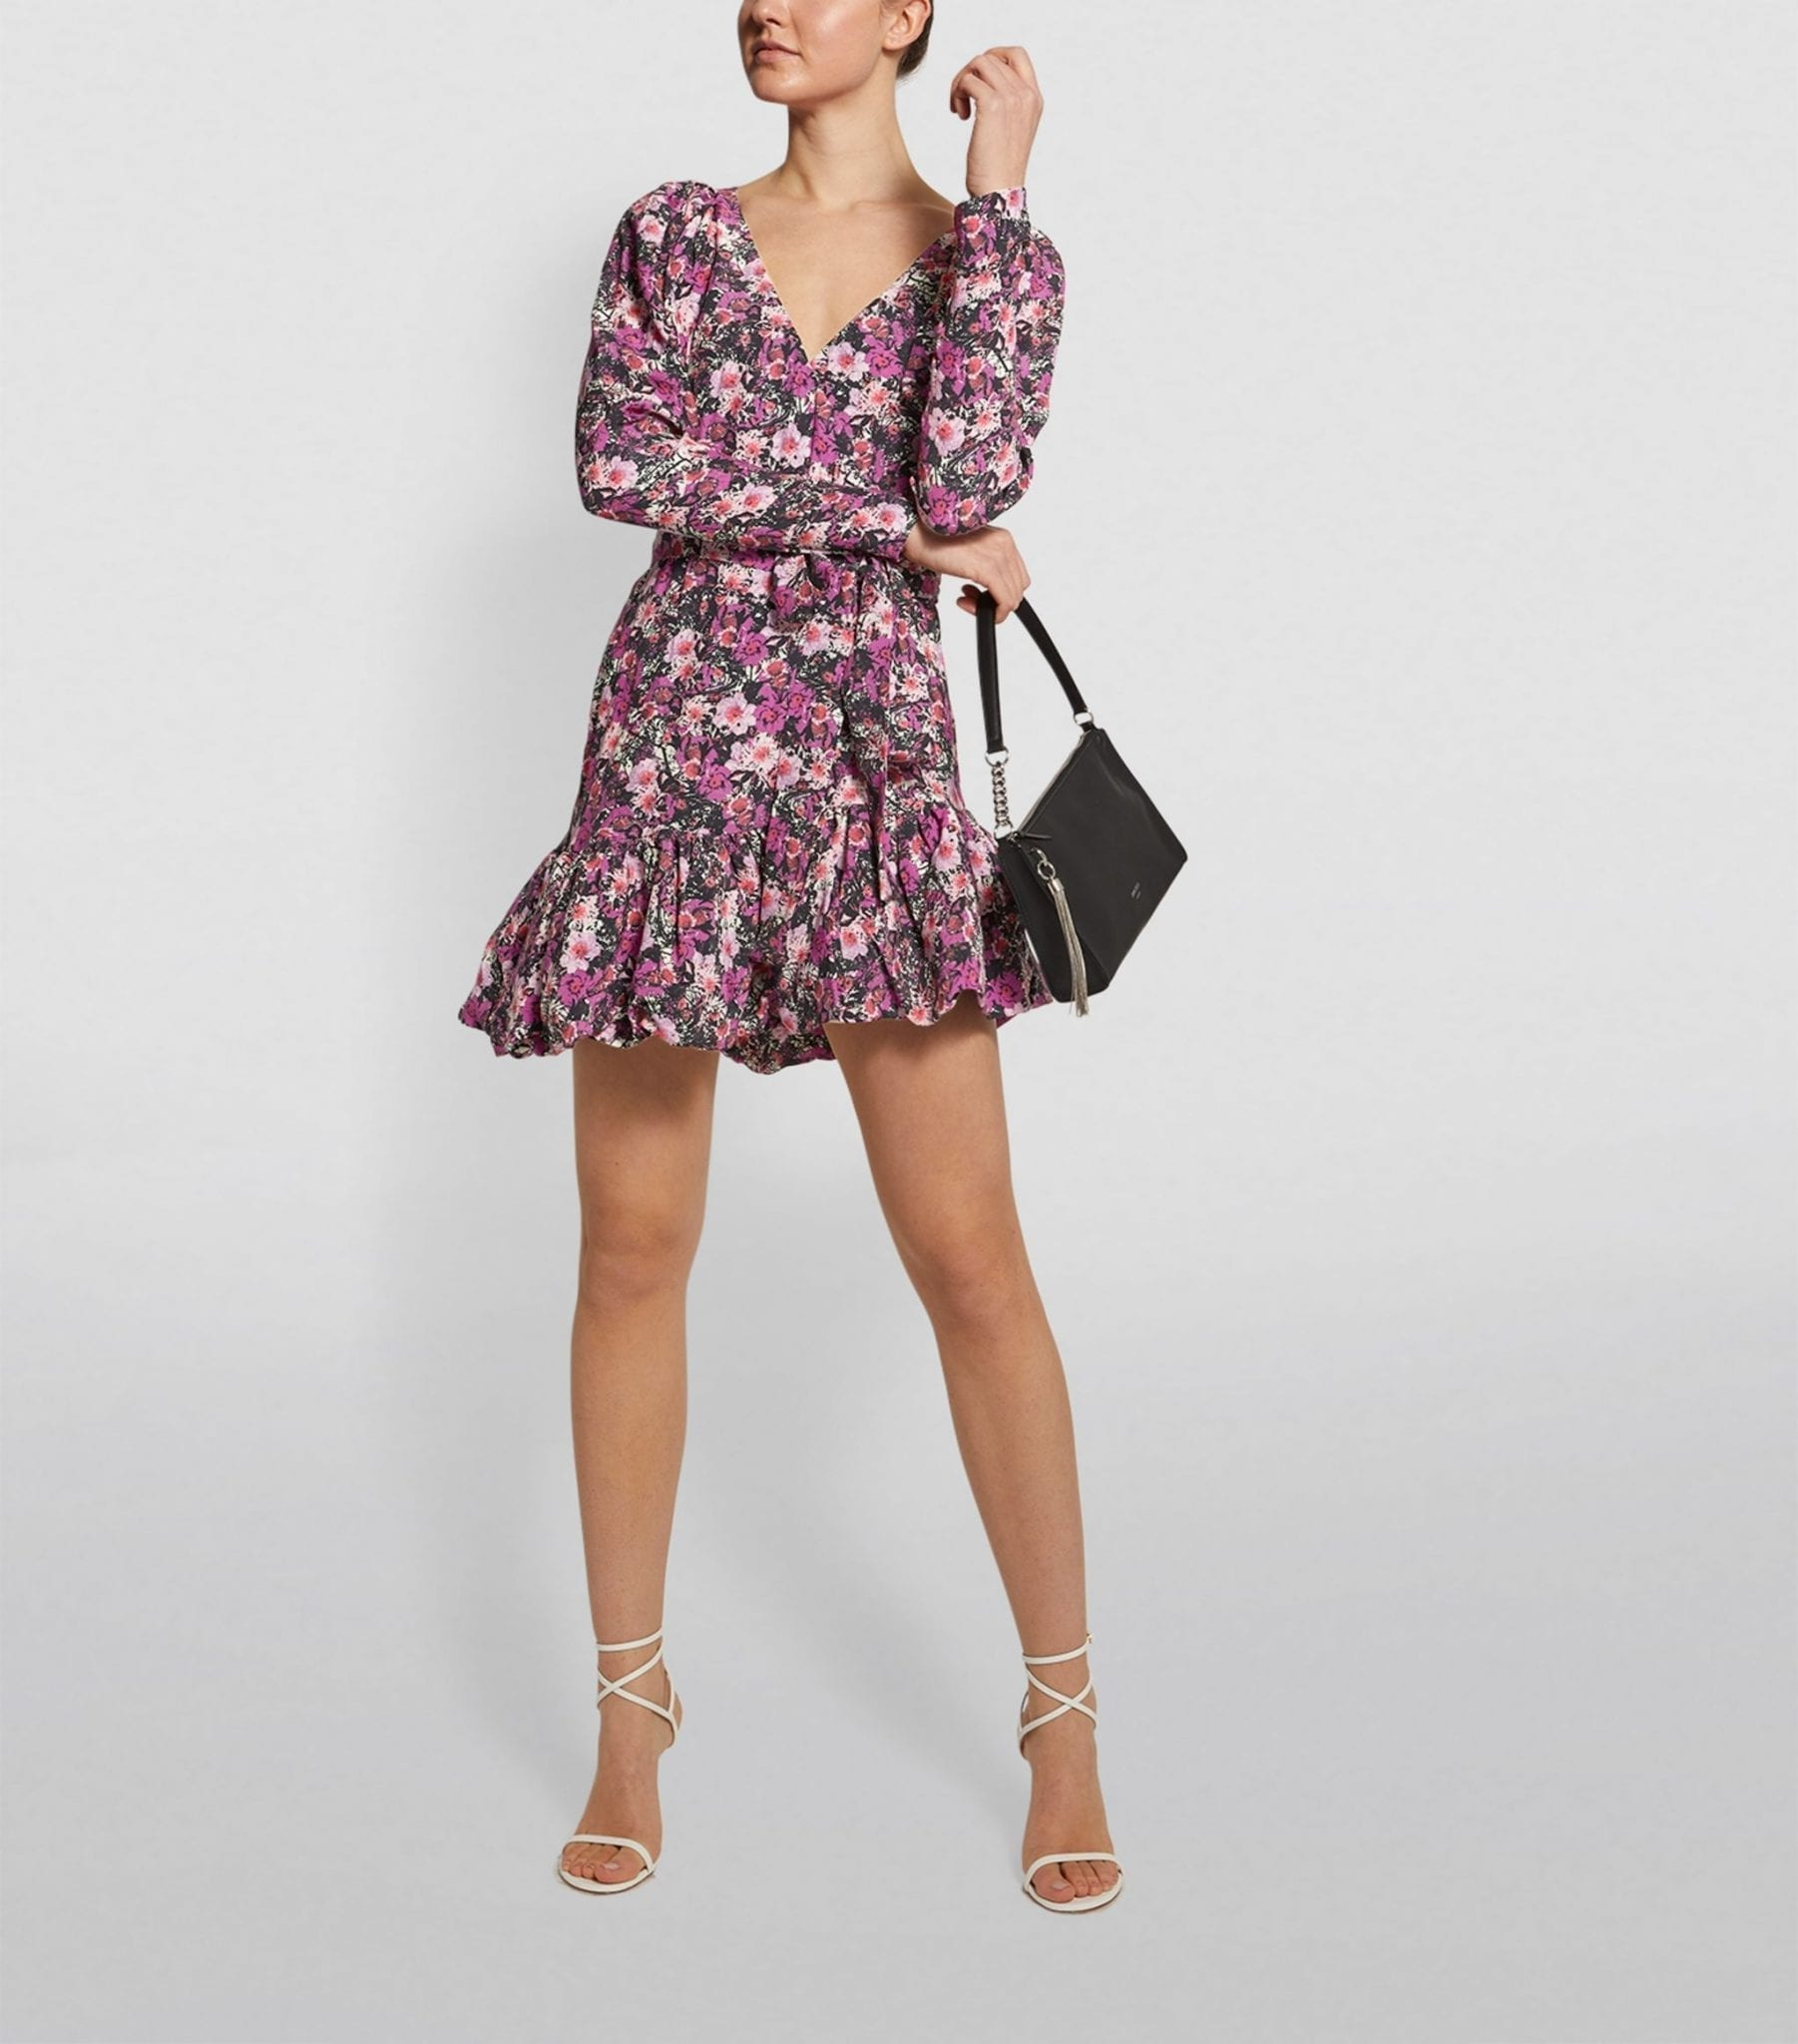 ROTATE Floral Tie Dress